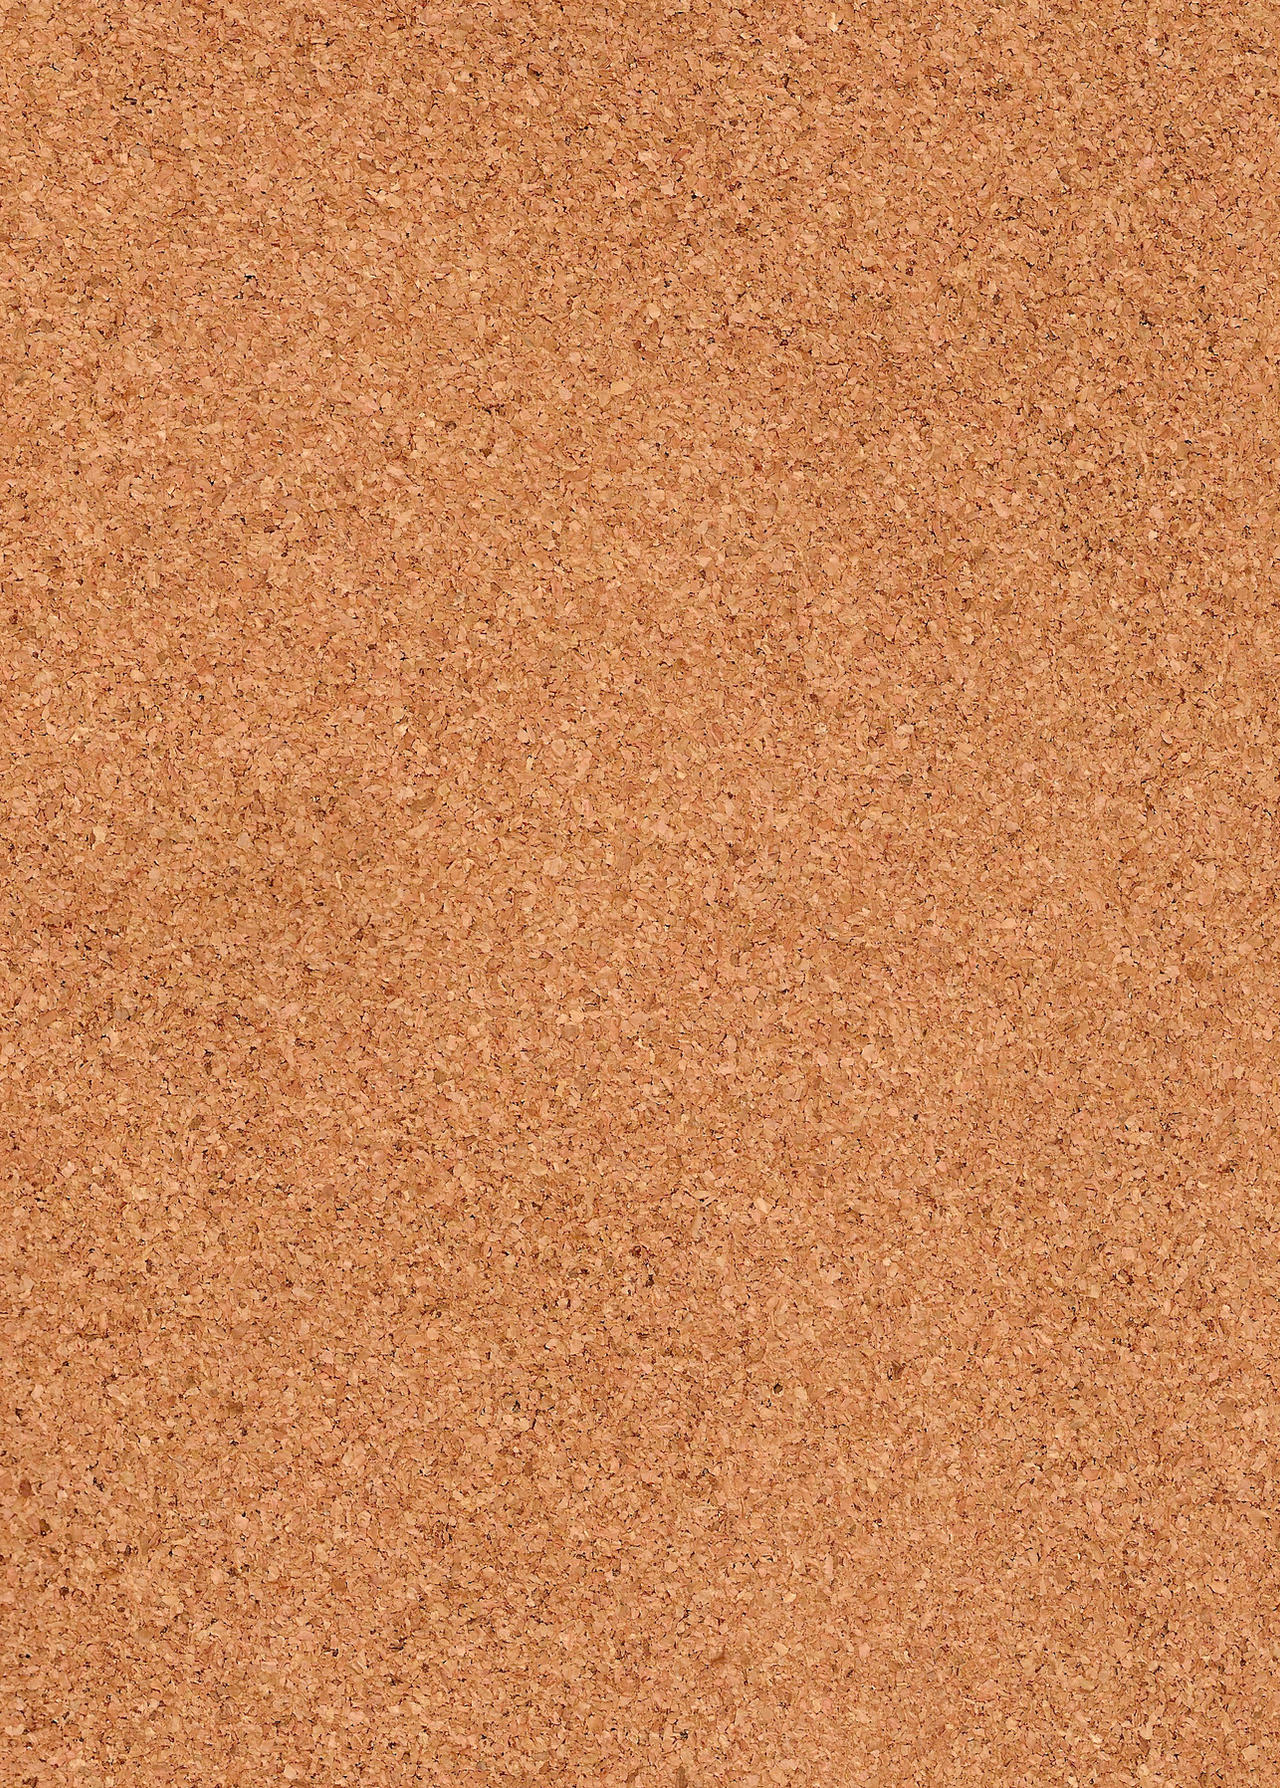 cork texture background stock - photo #31